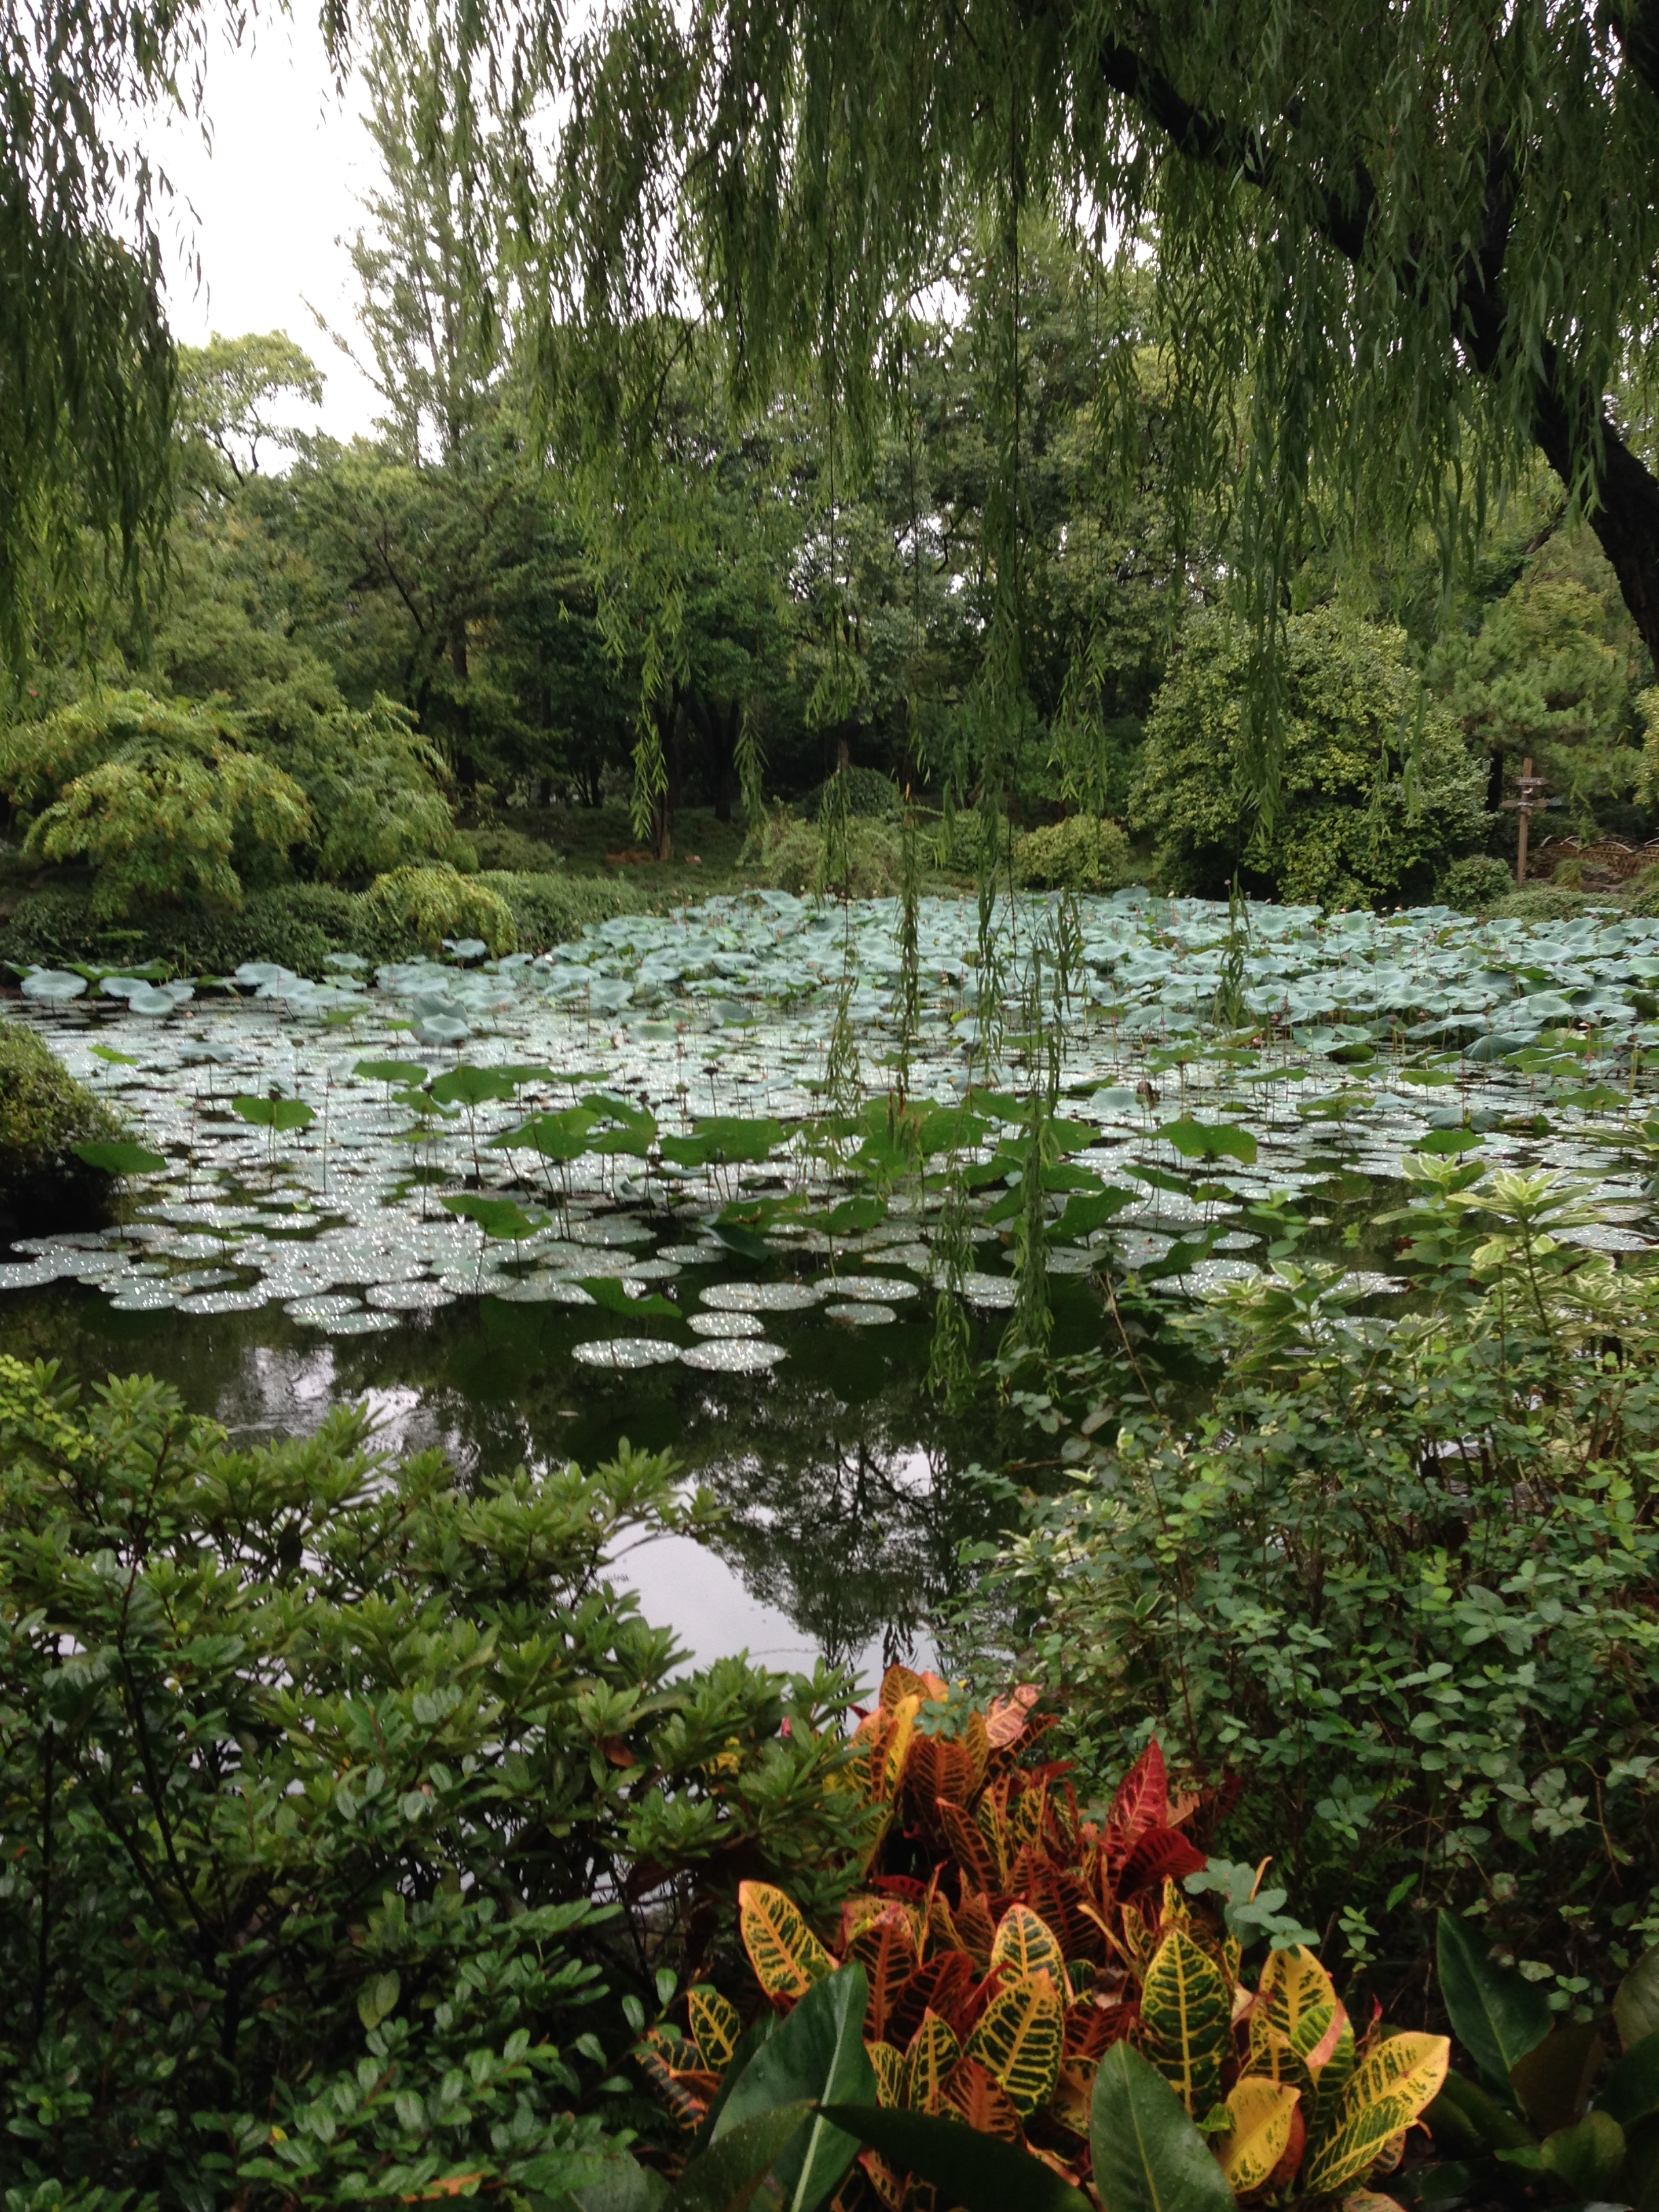 It's worth the search: a garden tucked away